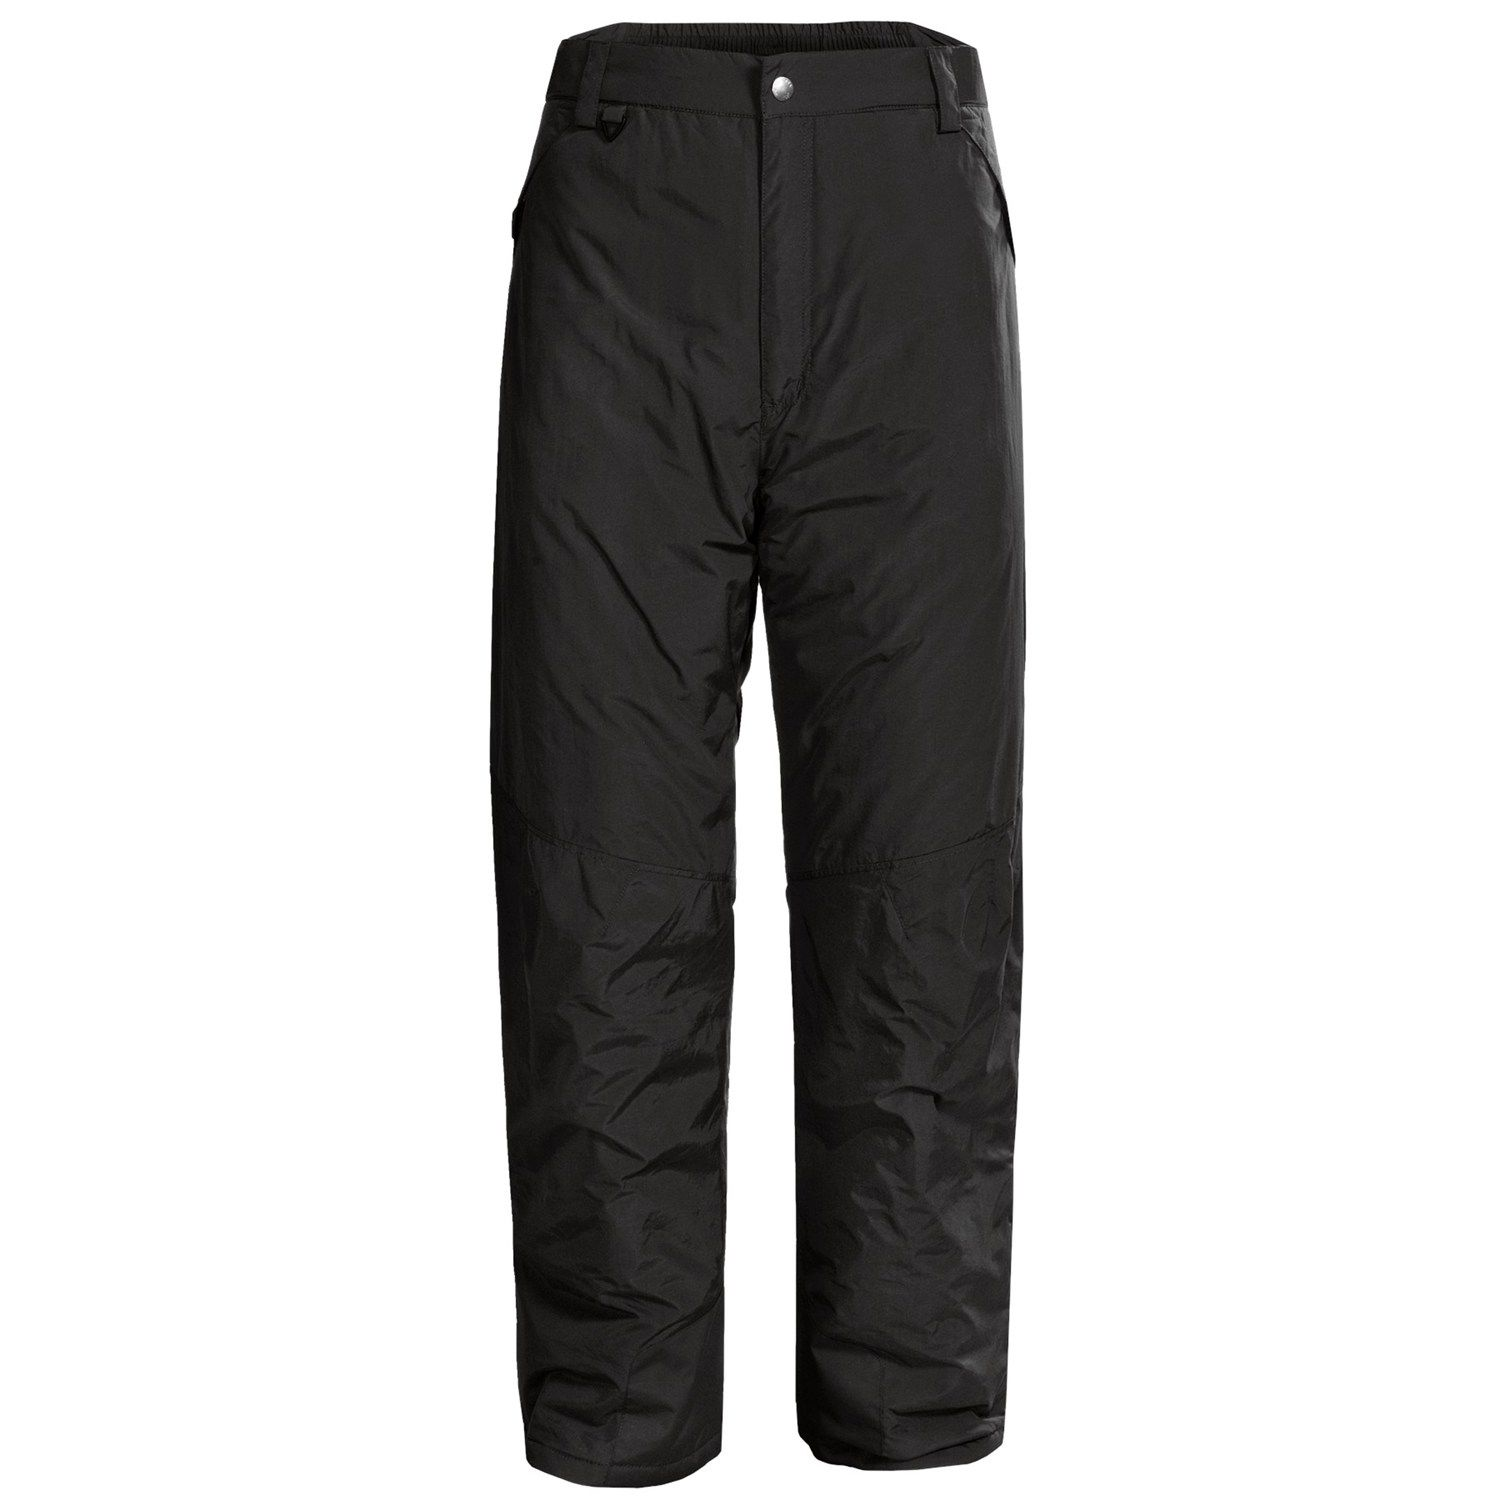 snow pants (for Isaac)